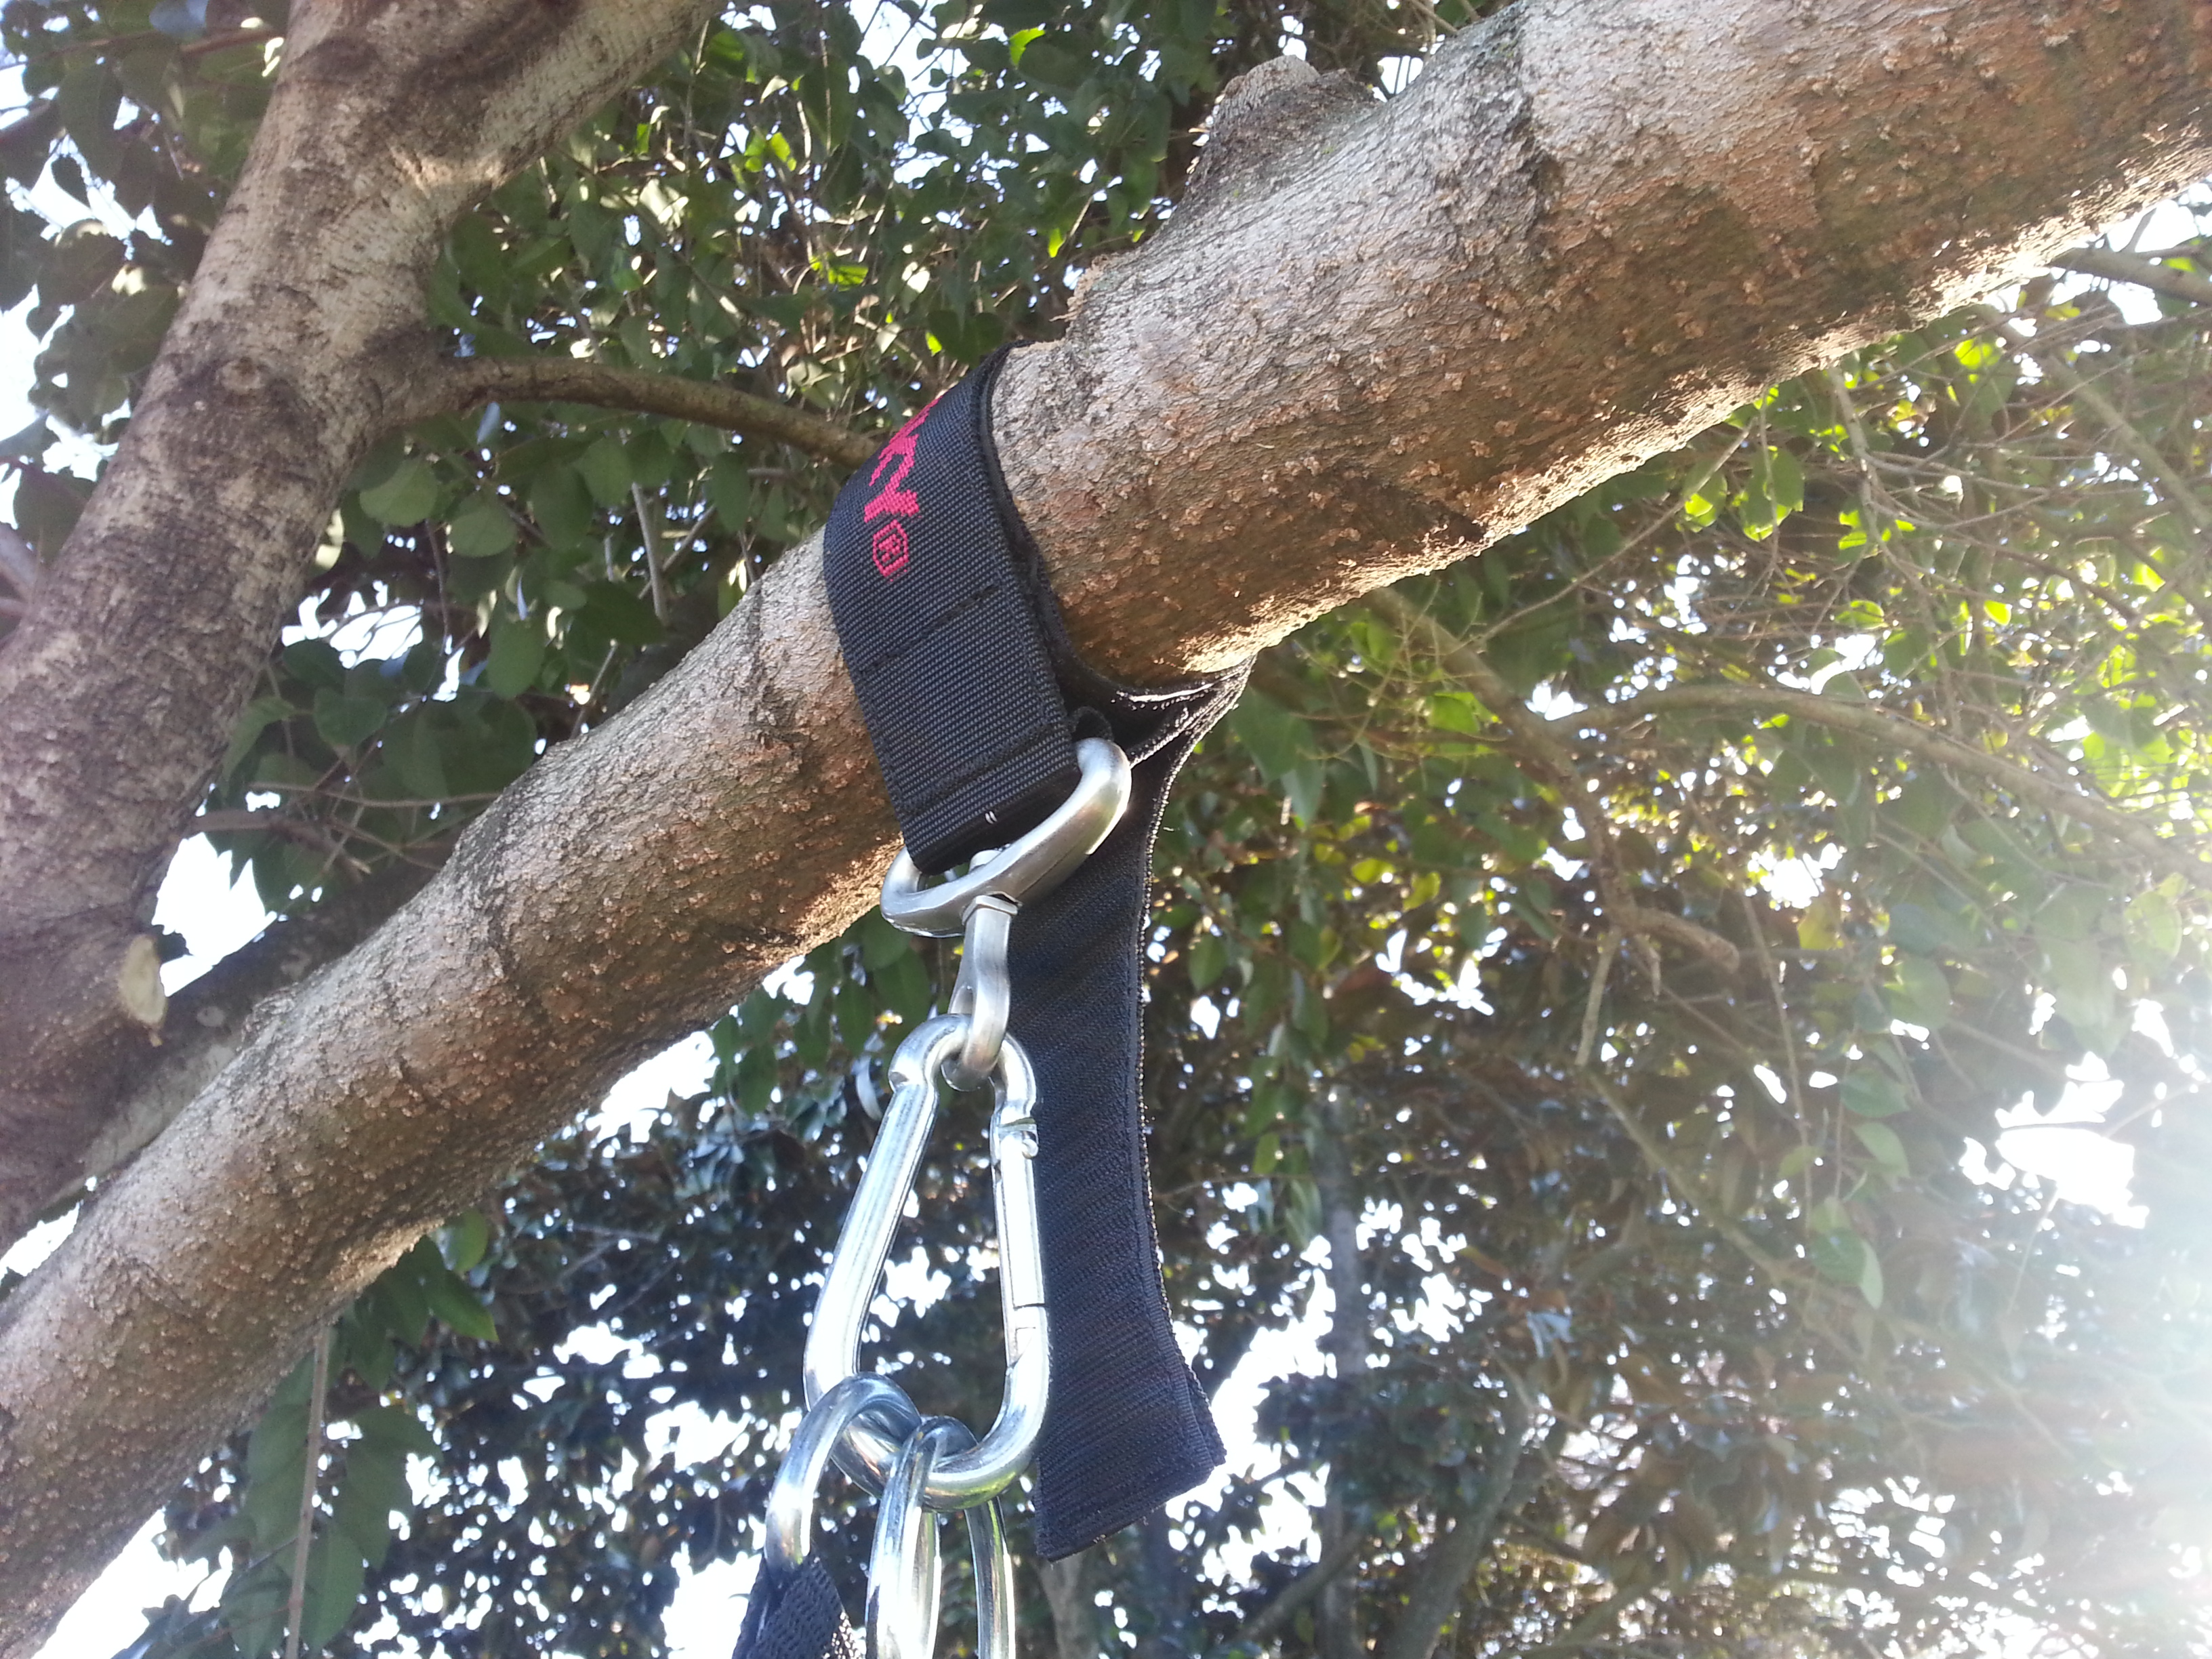 How to Hang a Punching Bag from a Useless Tree